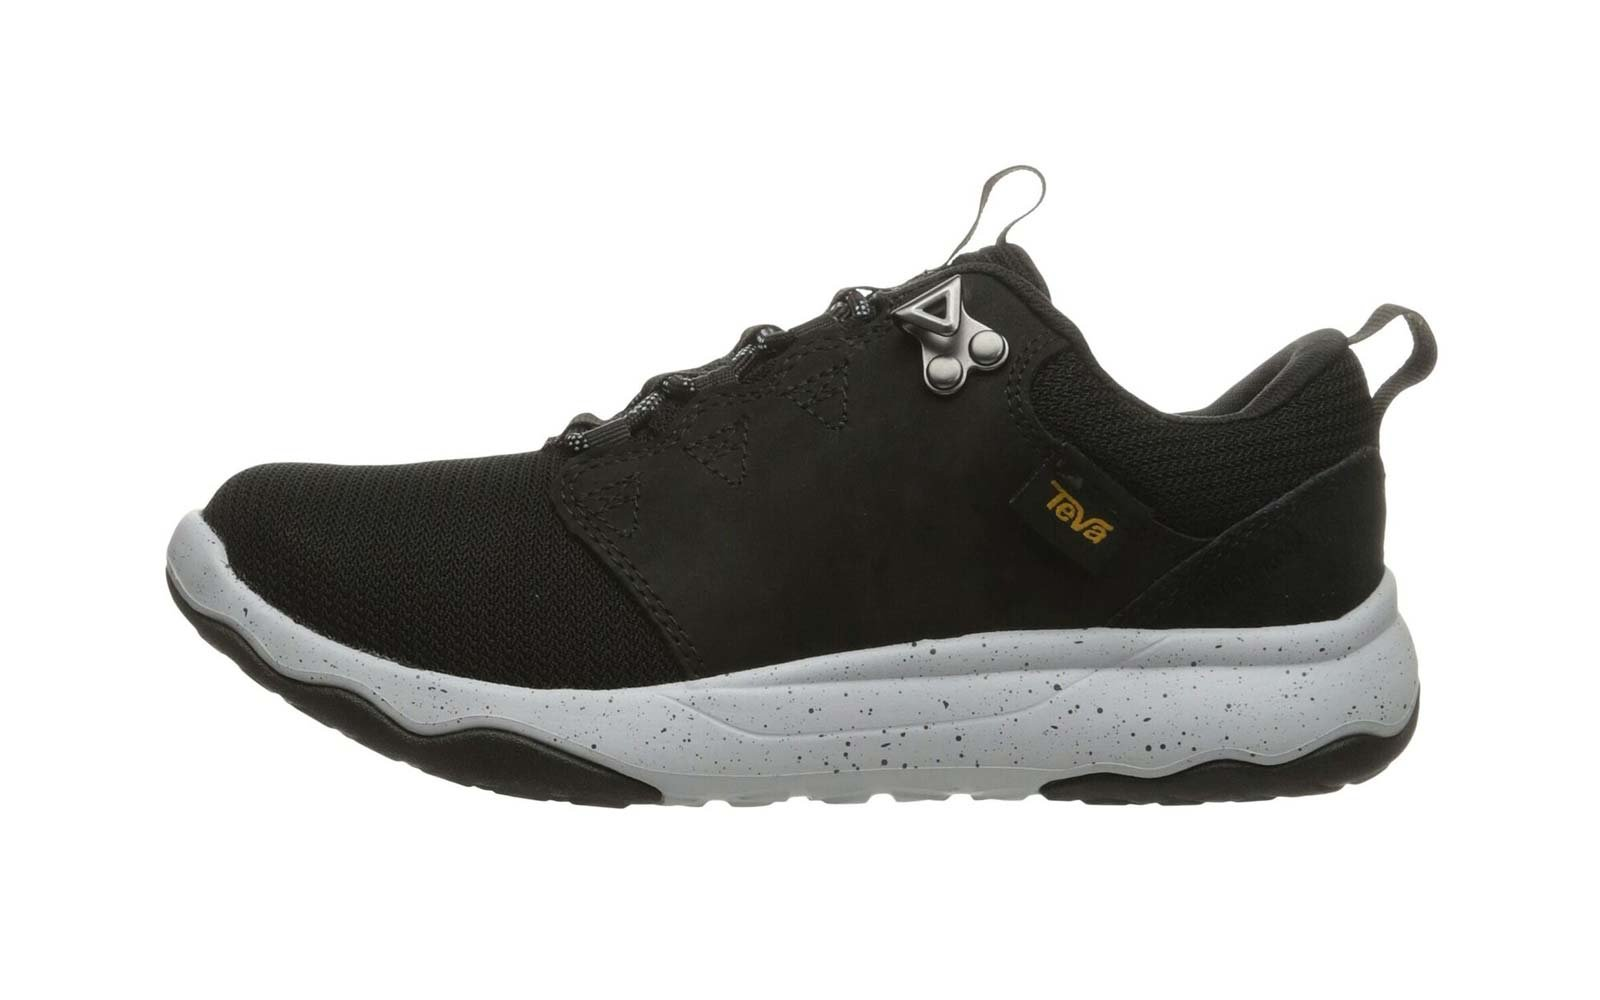 Teva waterproof shoes